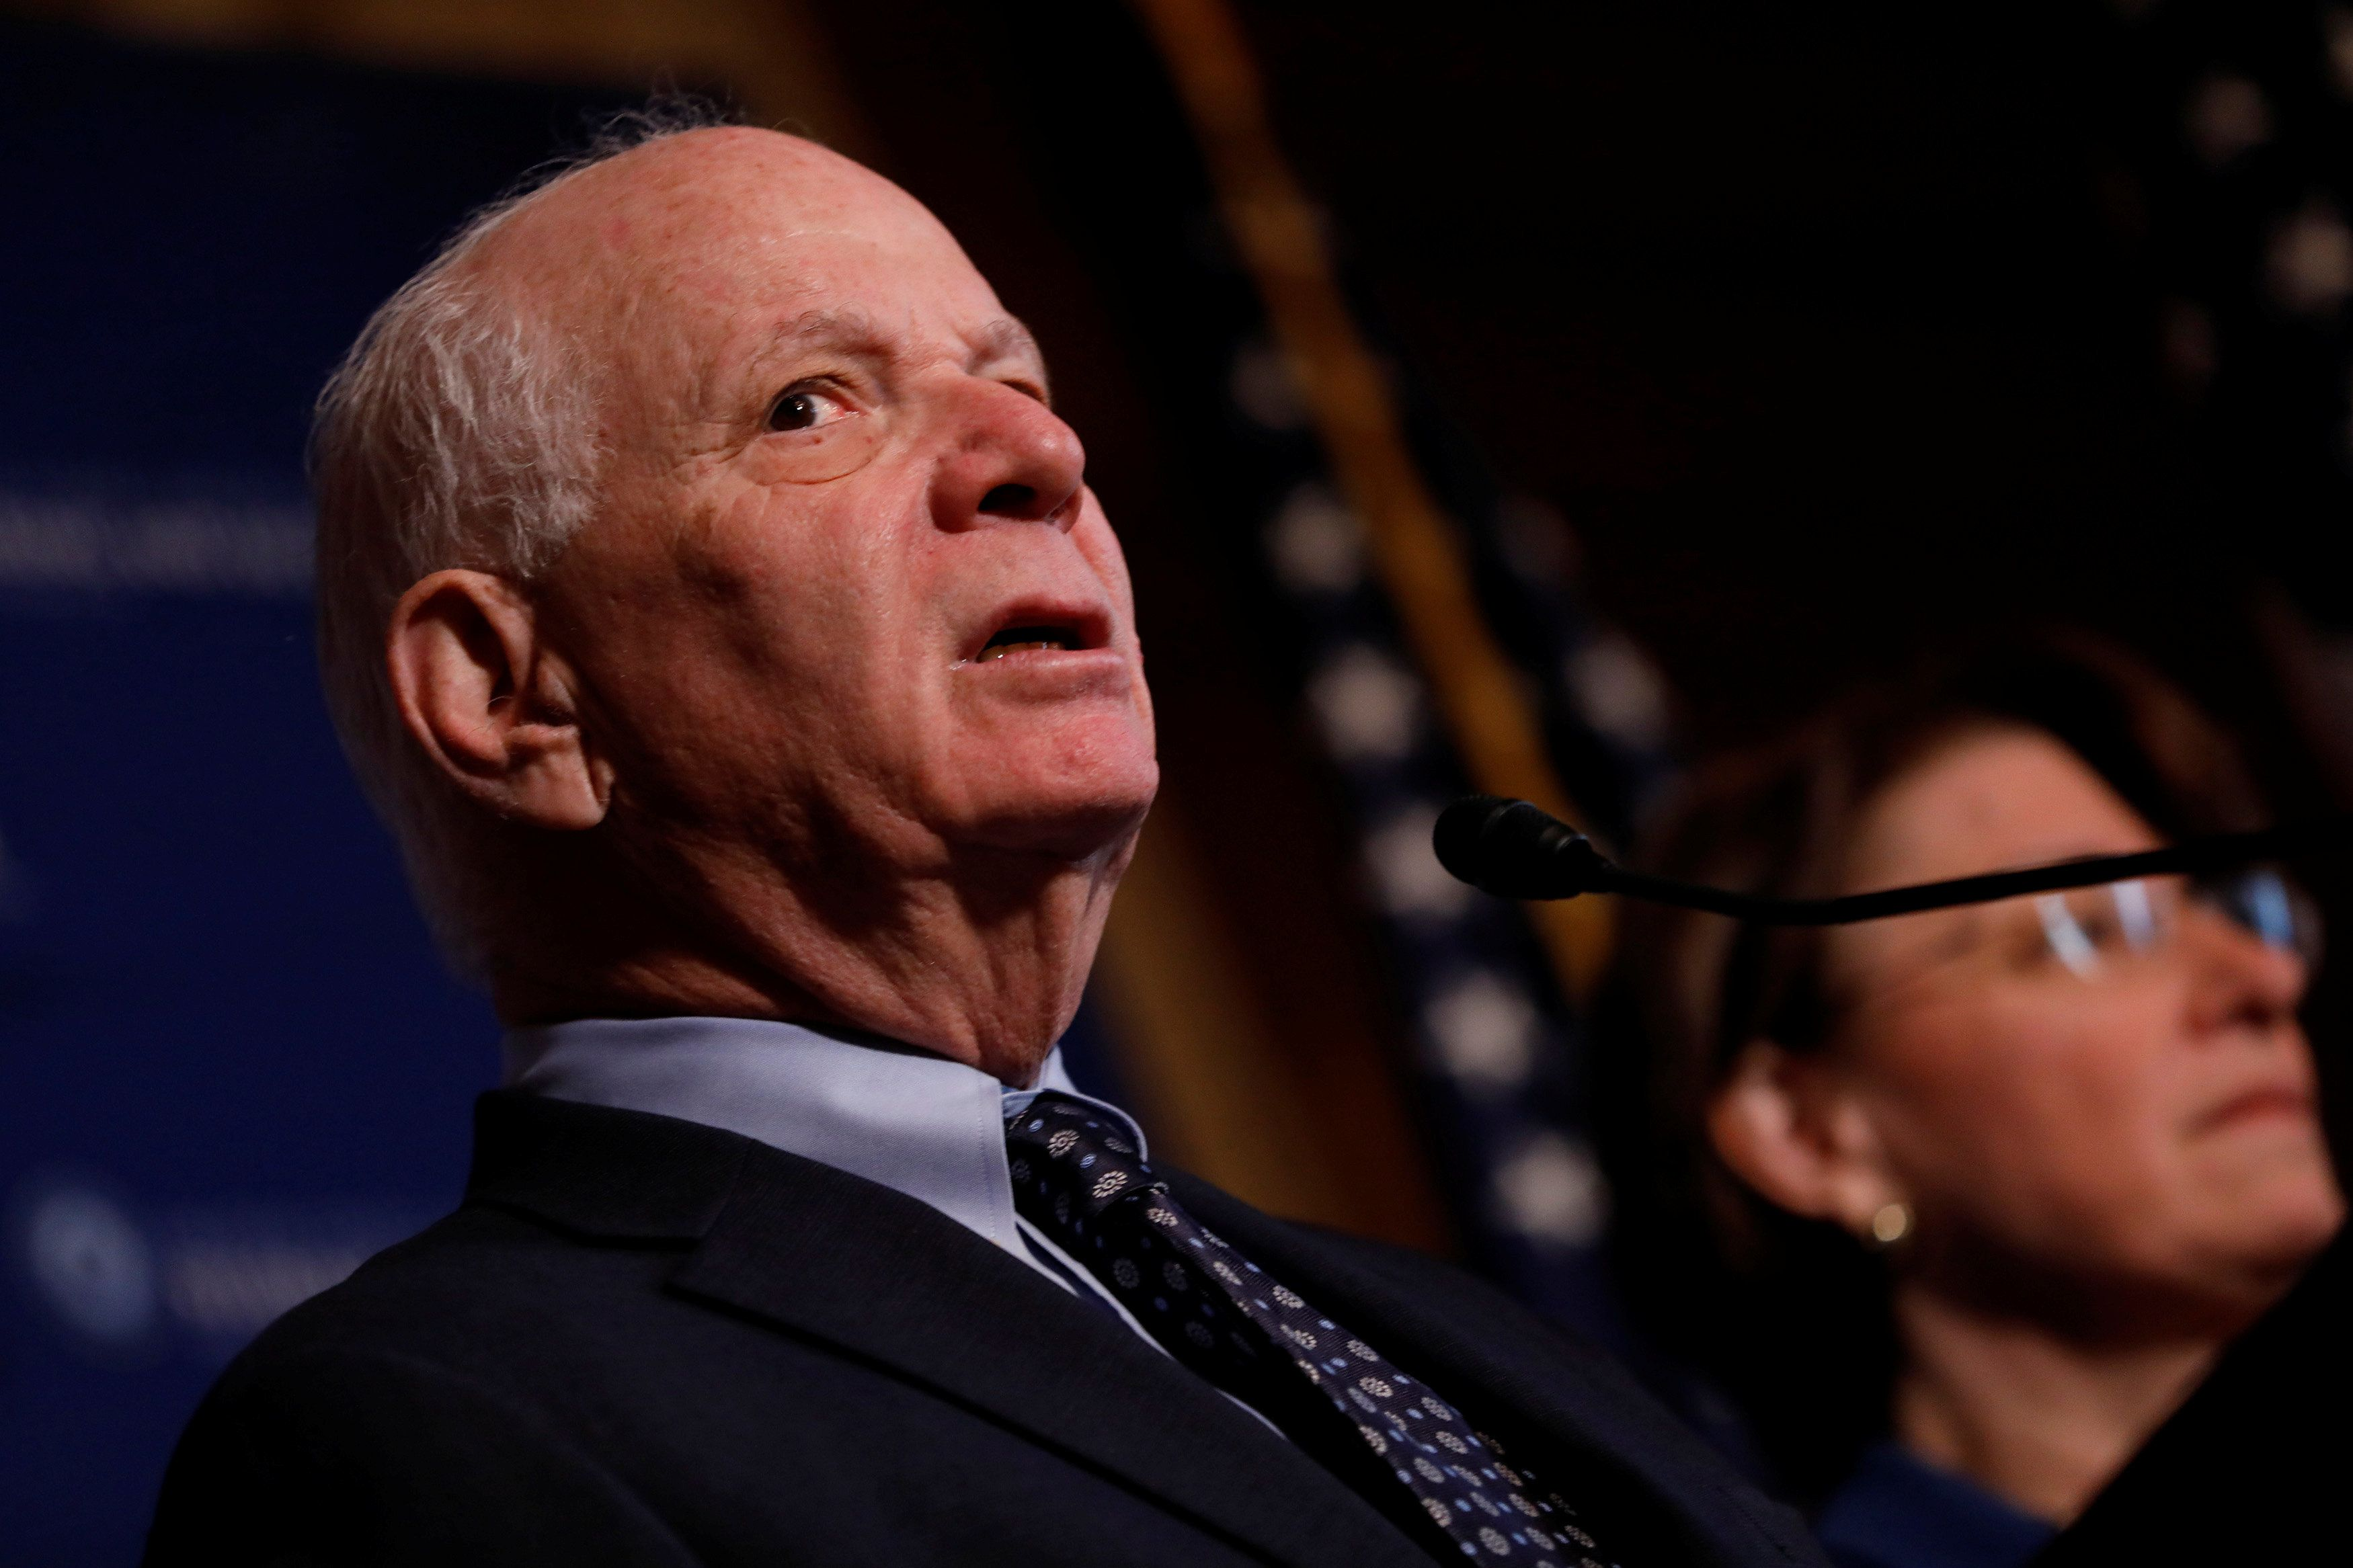 Senator Ben Cardin (D-MD) speaks at a press conference on the need for increased government transparency at the Capitol in Washington, D.C., U.S. March 15, 2017.  REUTERS/Aaron P. Bernstein